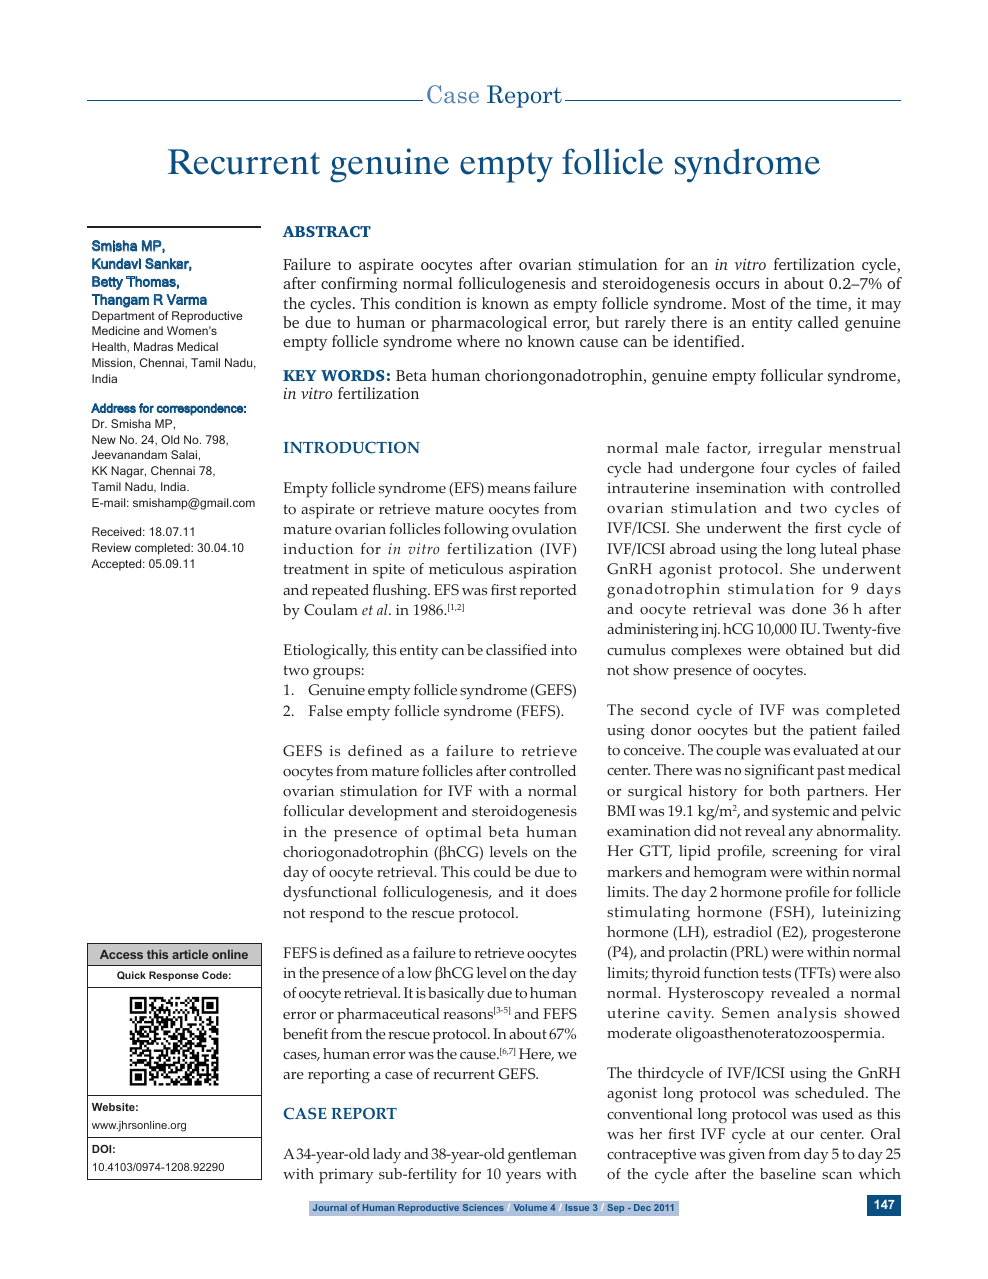 Recurrent genuine empty follicle syndrome – topic of research paper